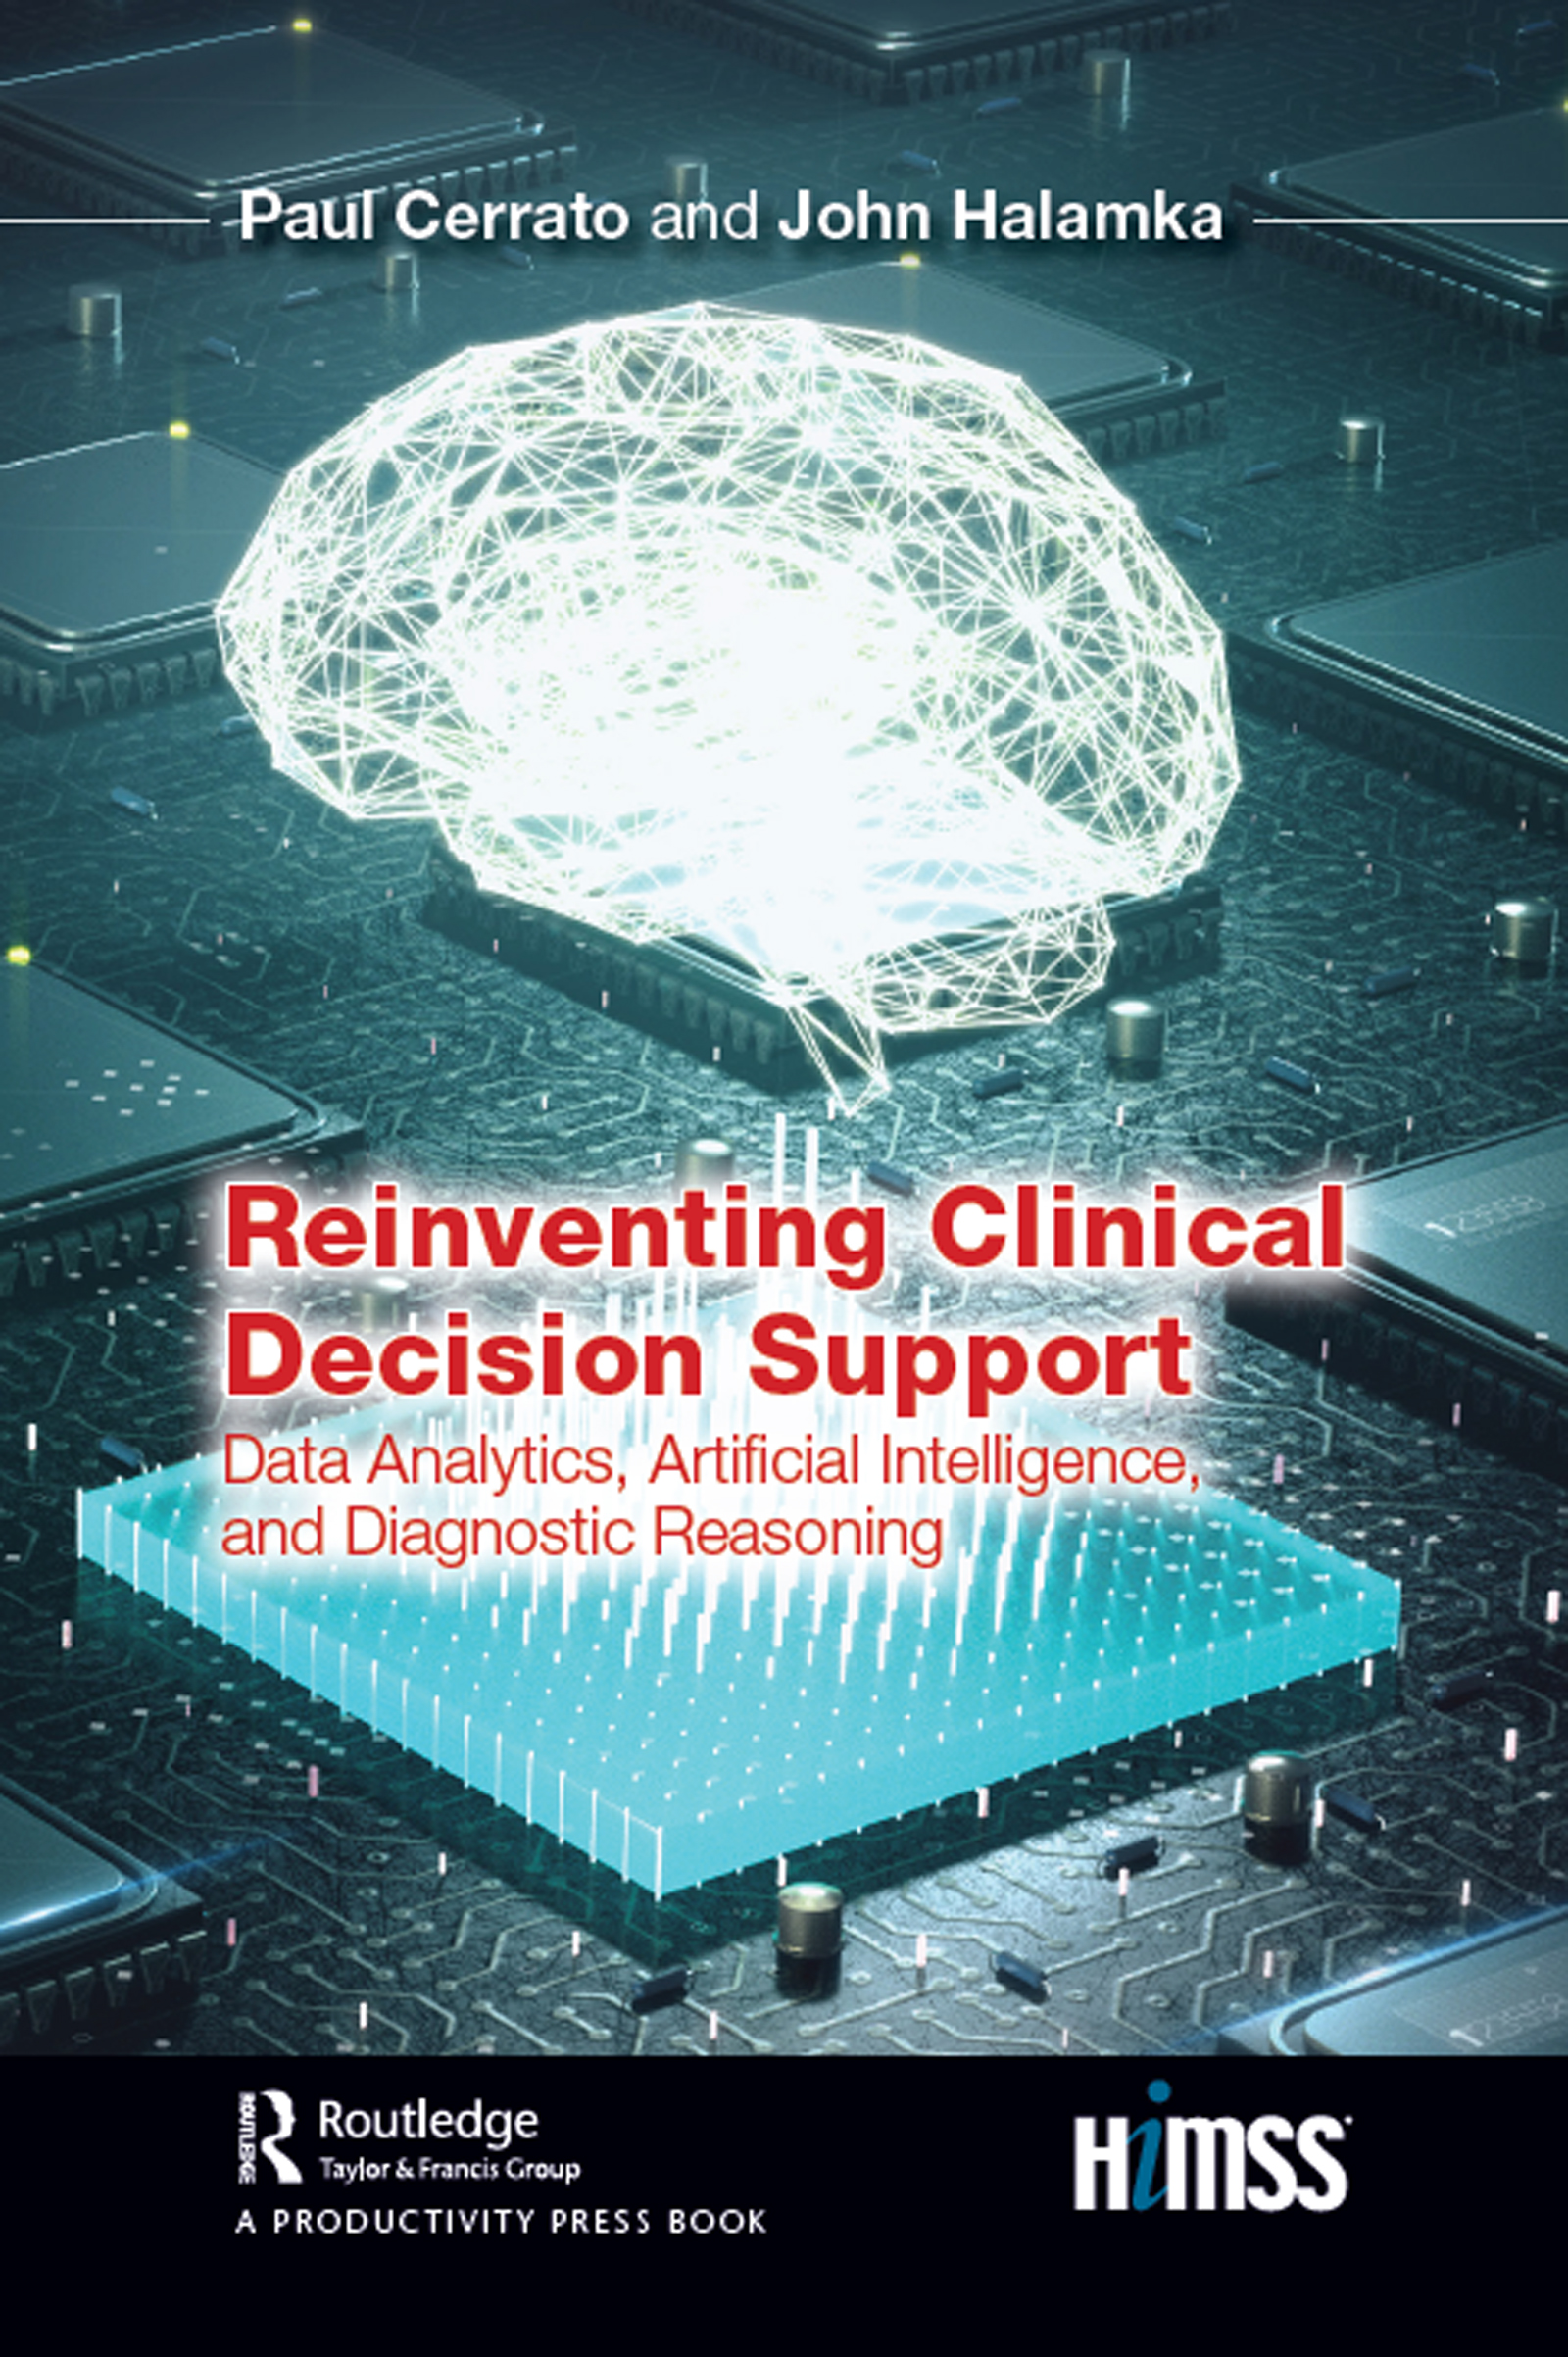 Reinventing Clinical Decision Support: Data Analytics, Artificial Intelligence, and Diagnostic Reasoning book cover